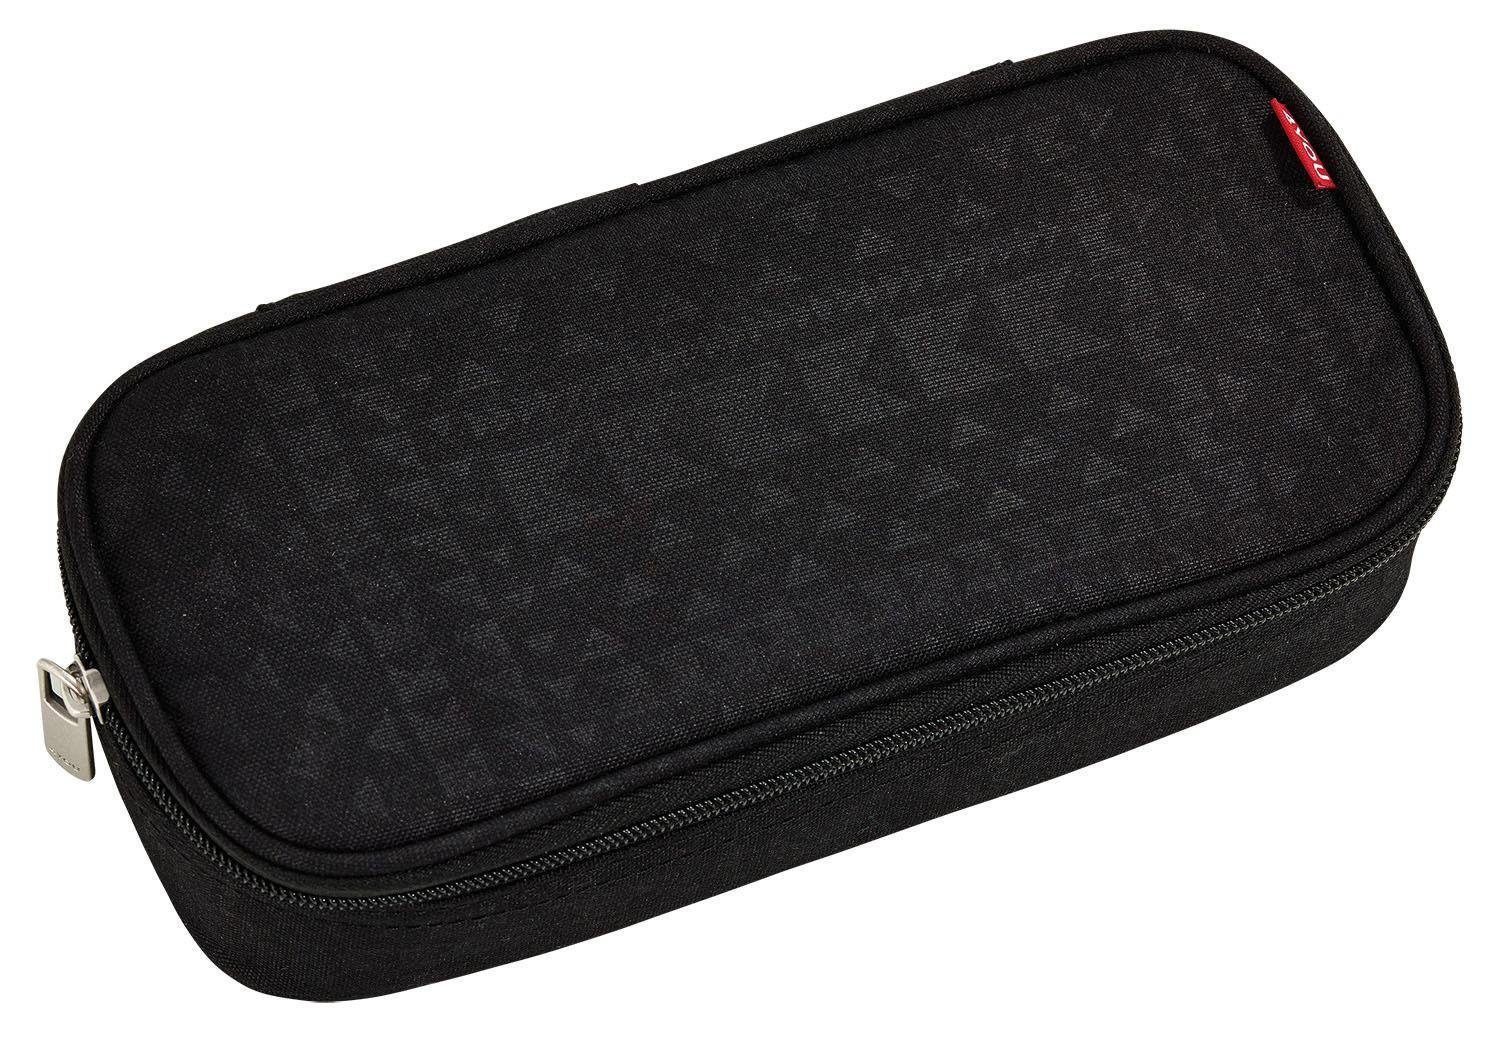 4YOU Mäppchen mit Geodreieck®, Geometric Black, »Pencil Case«